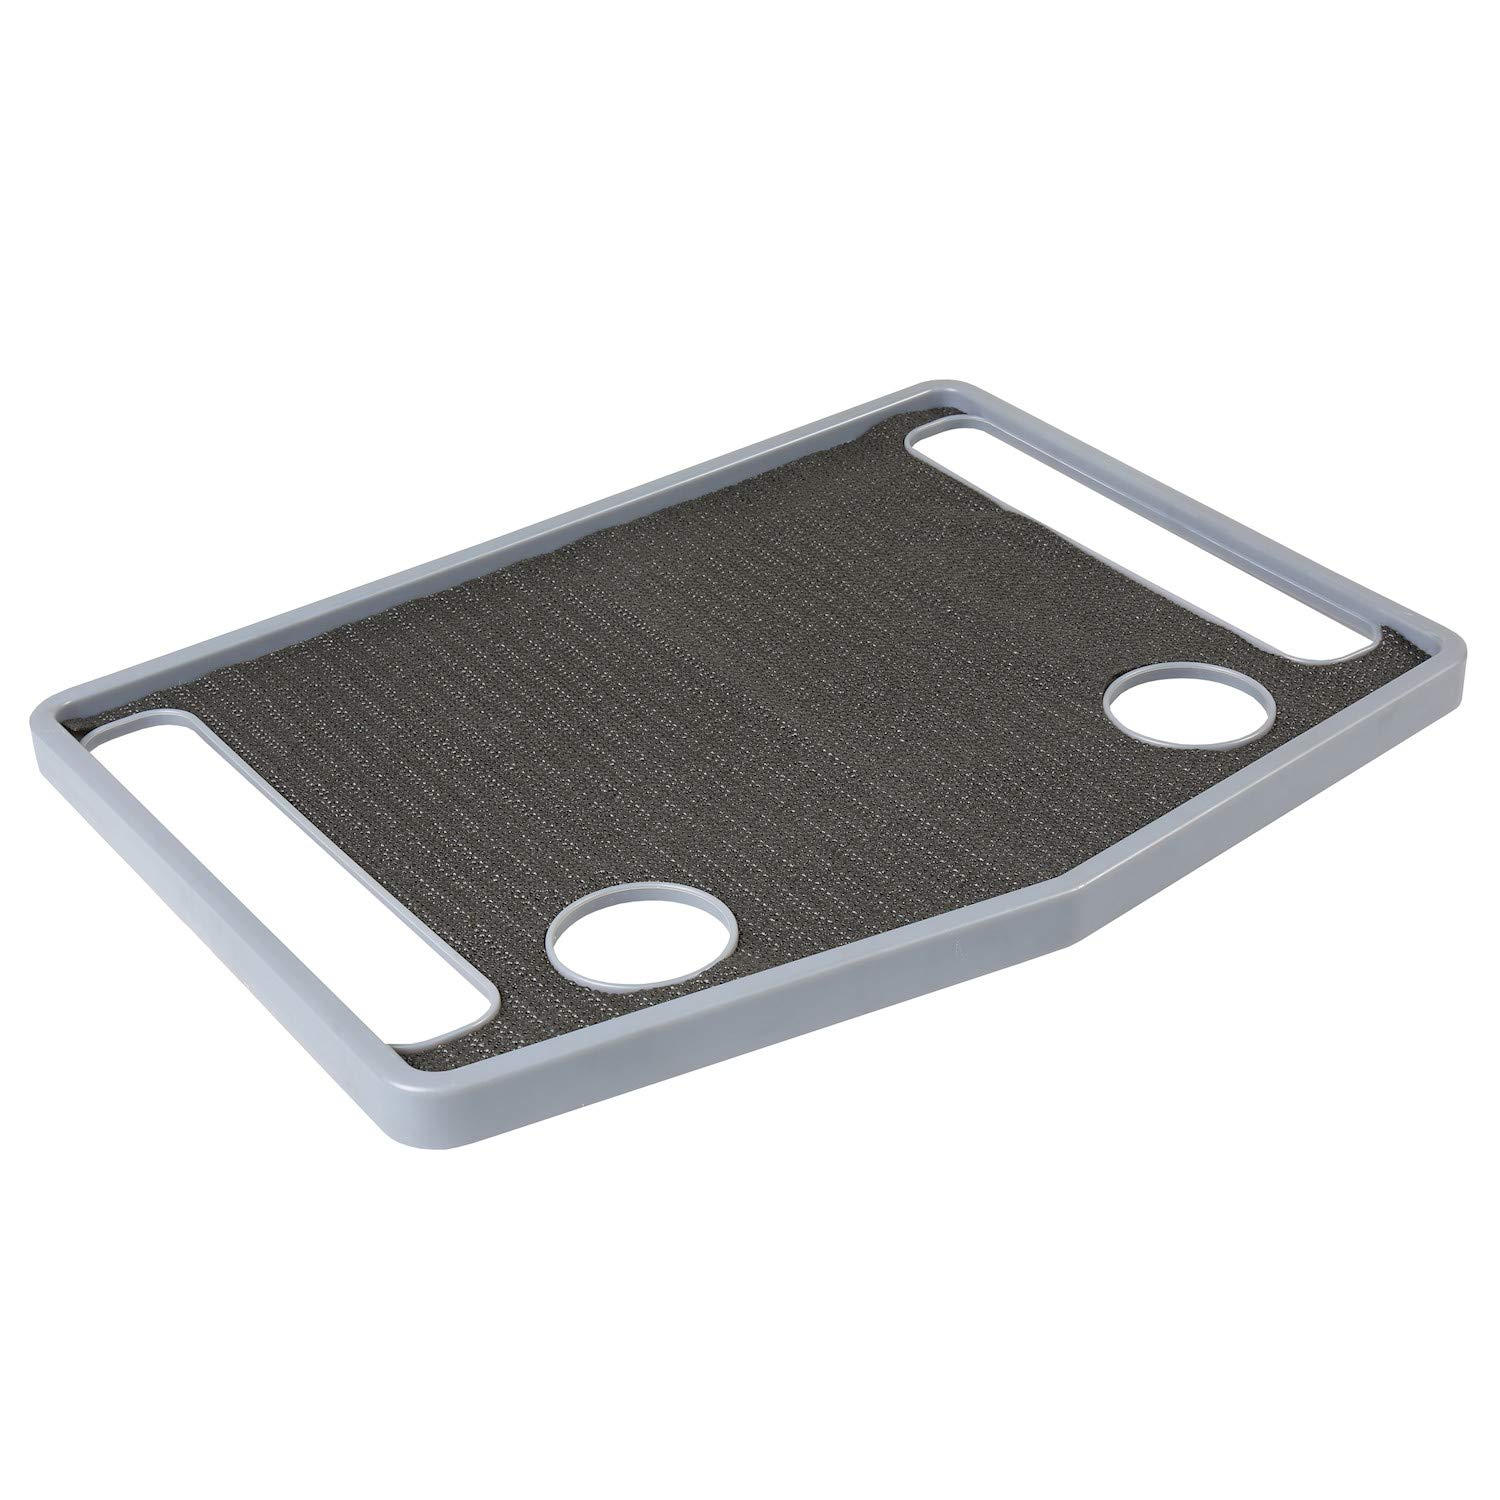 Support Plus Walker Tray Table Accessory with Non-Slip Mat/Cup Holders (21''x16'') - Gray by SUPPORT PLUS